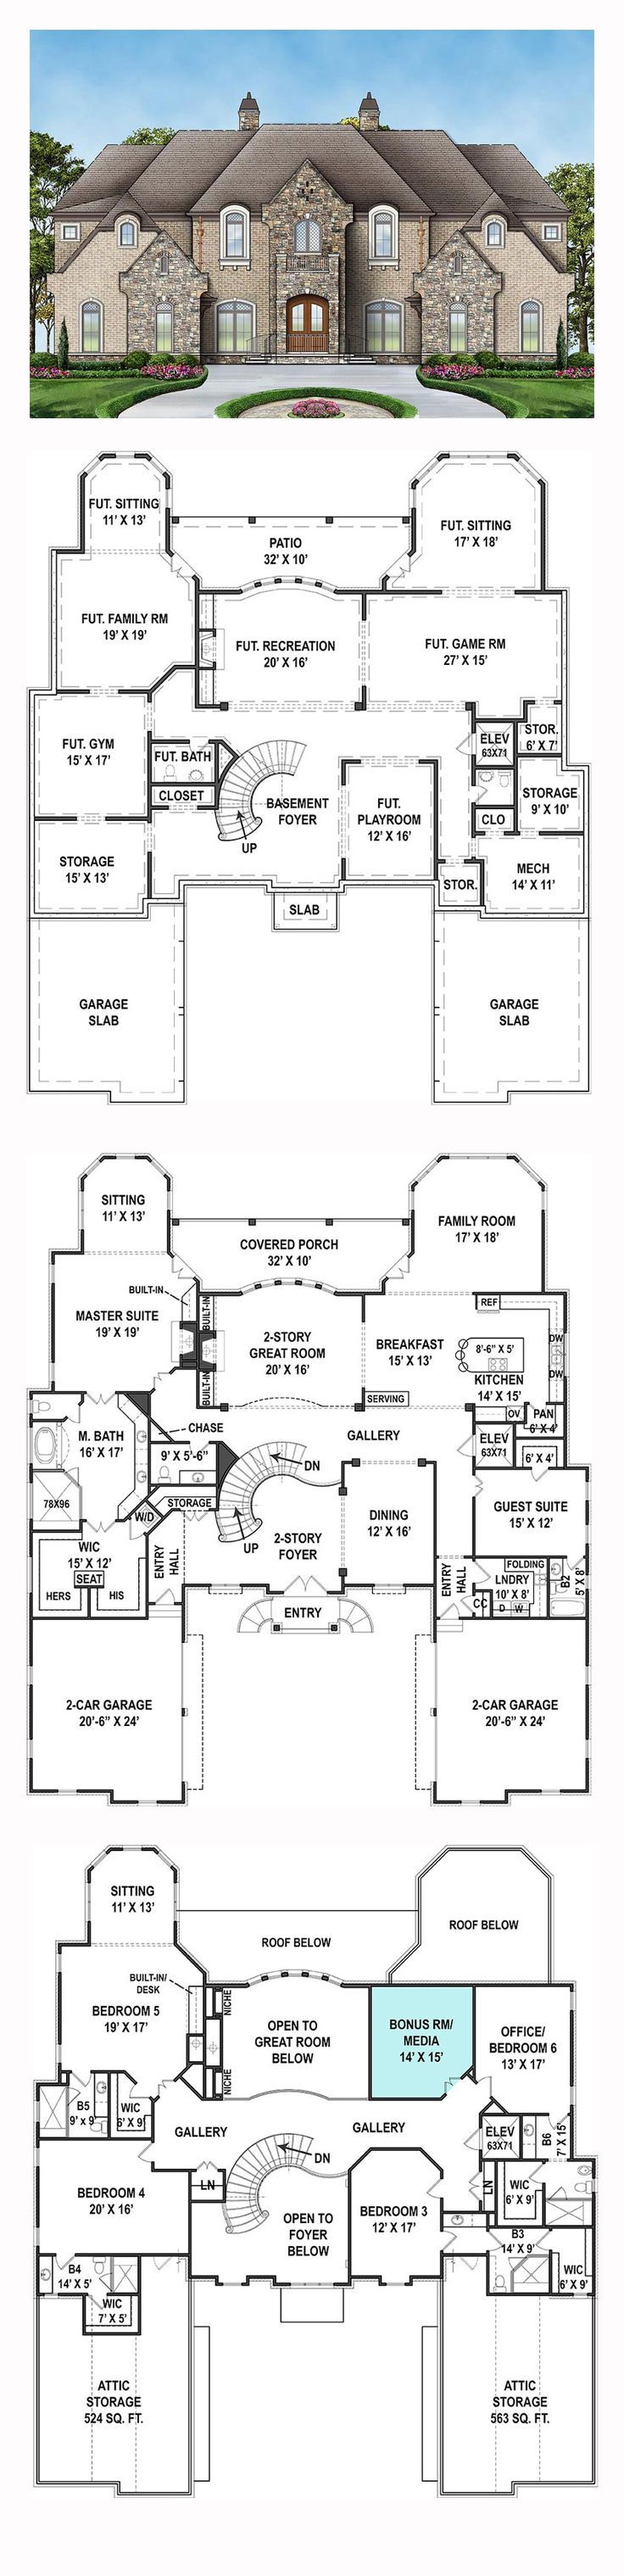 New House Plan 72171   Total Living Area  6072 sq  ft   6. Best 25  New house plans ideas on Pinterest   House plans